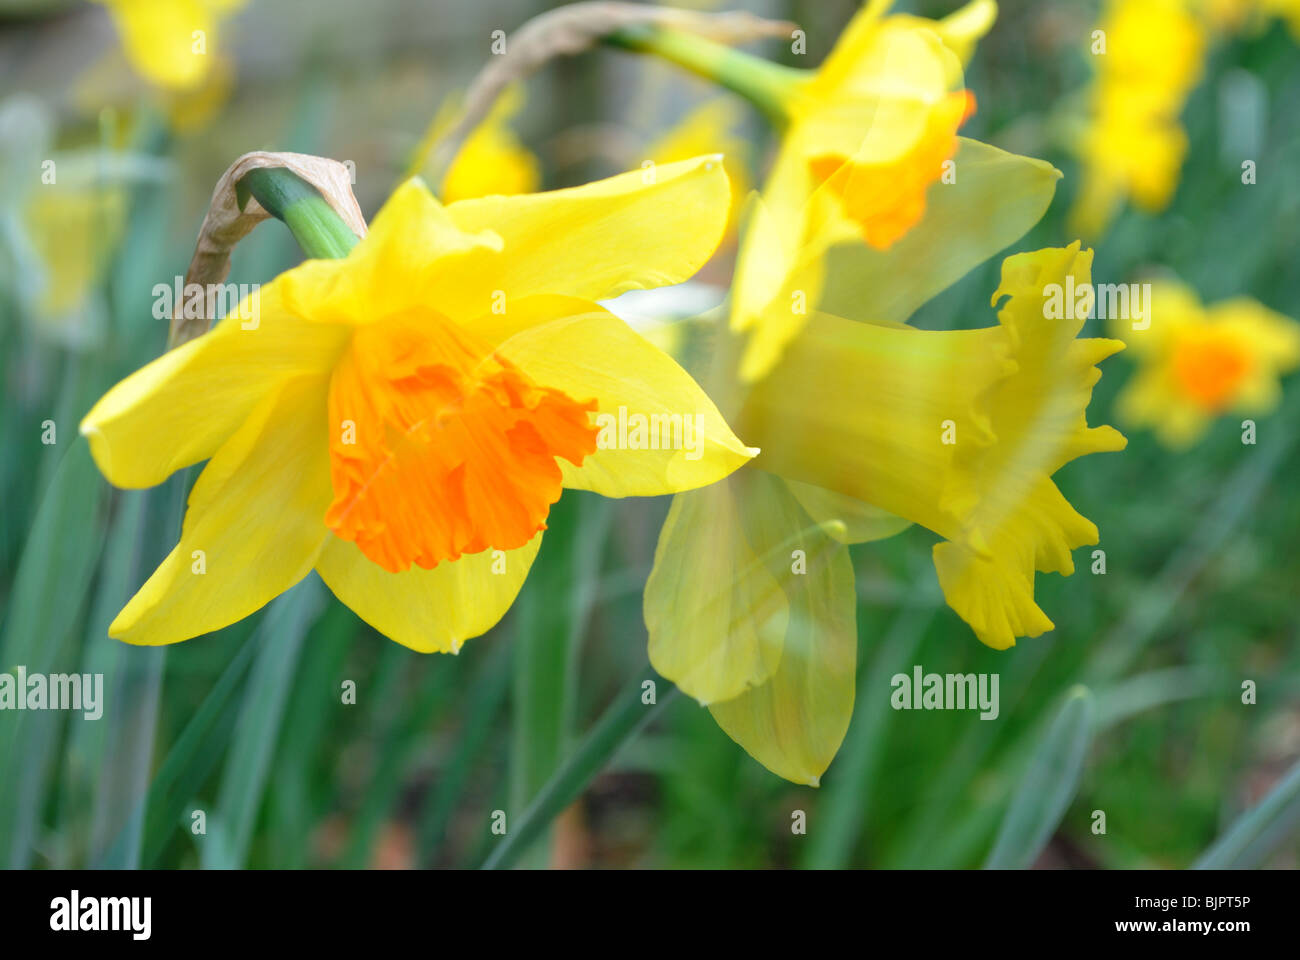 double exposure of daffodils stock photo royalty free image